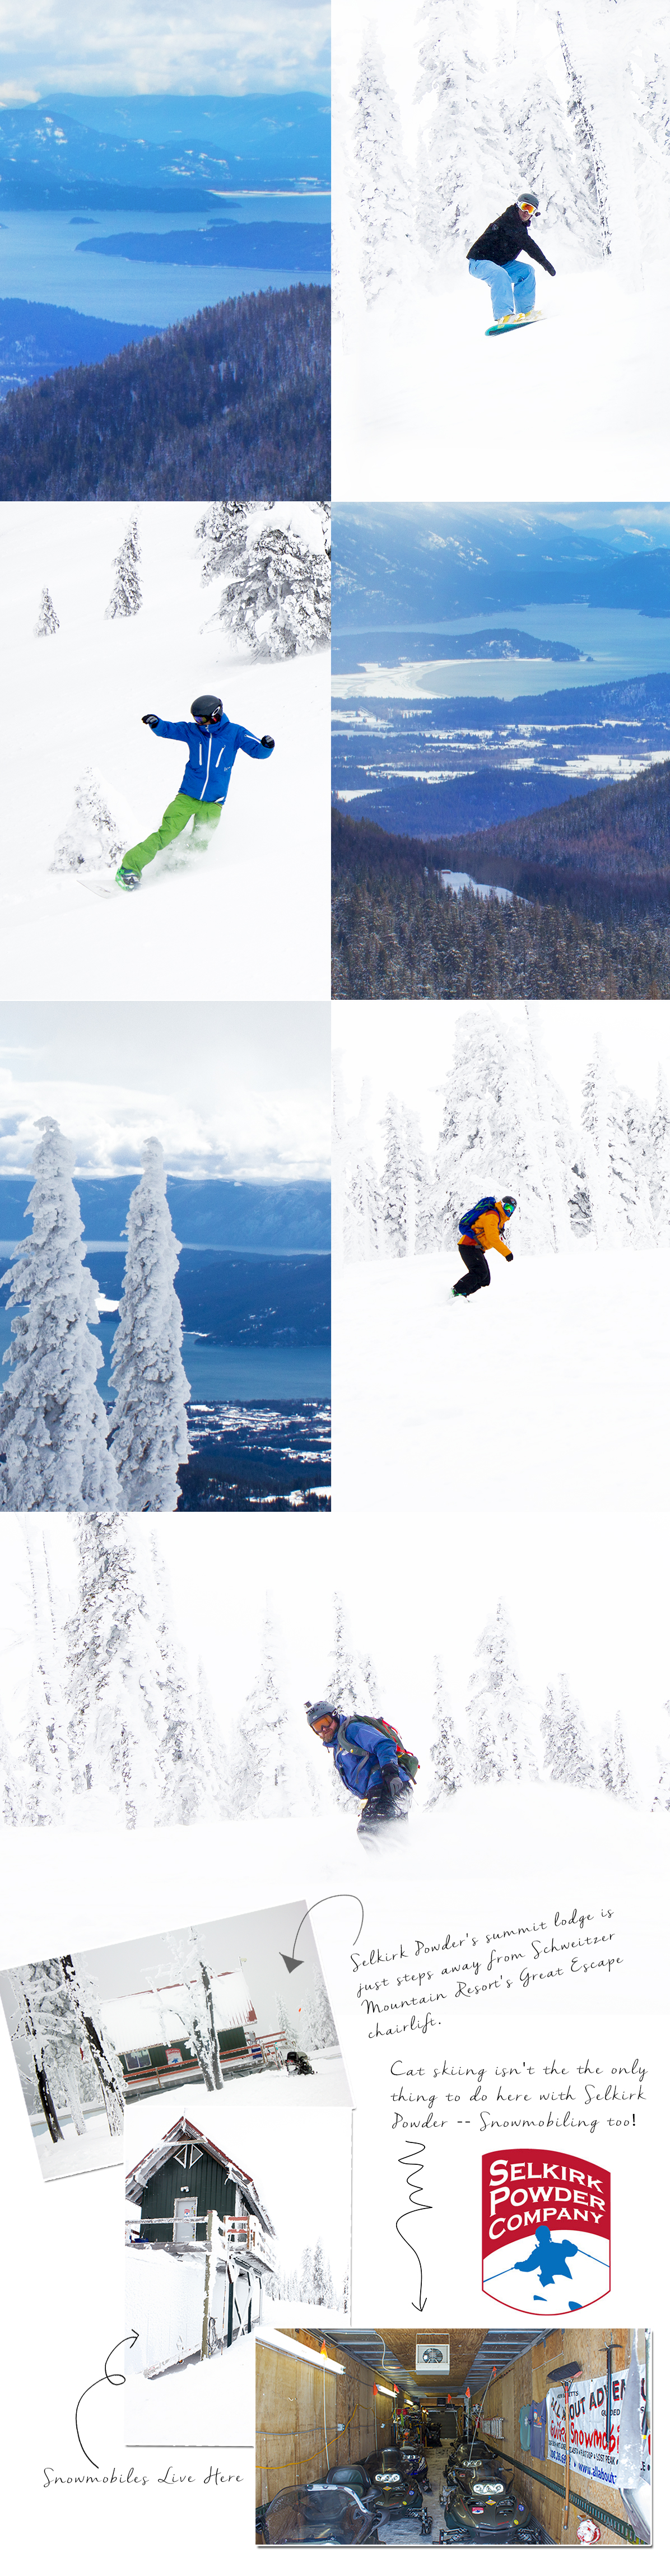 Snowcat Skiing with Selkirk Powder Company in BEAUTIFUL Idaho via J5MM.com